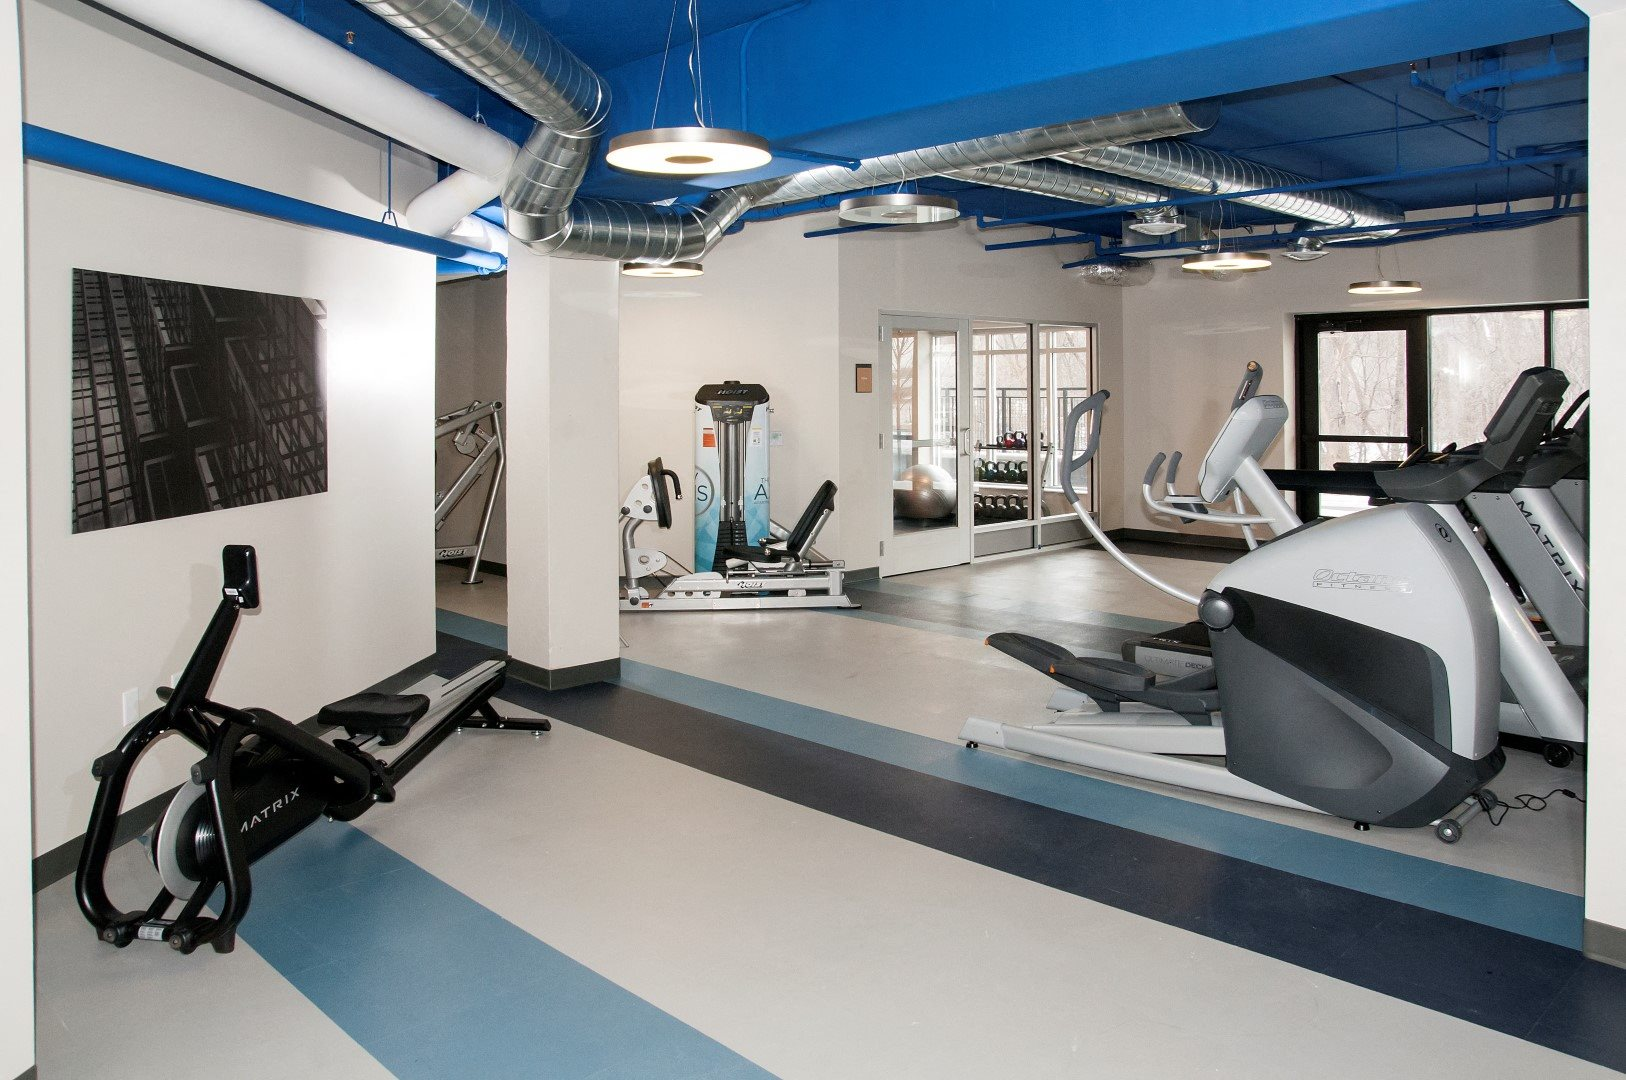 State-of-the-Art Fitness Center  with Modern Equipment at The Axis, Plymouth, MN, 55441